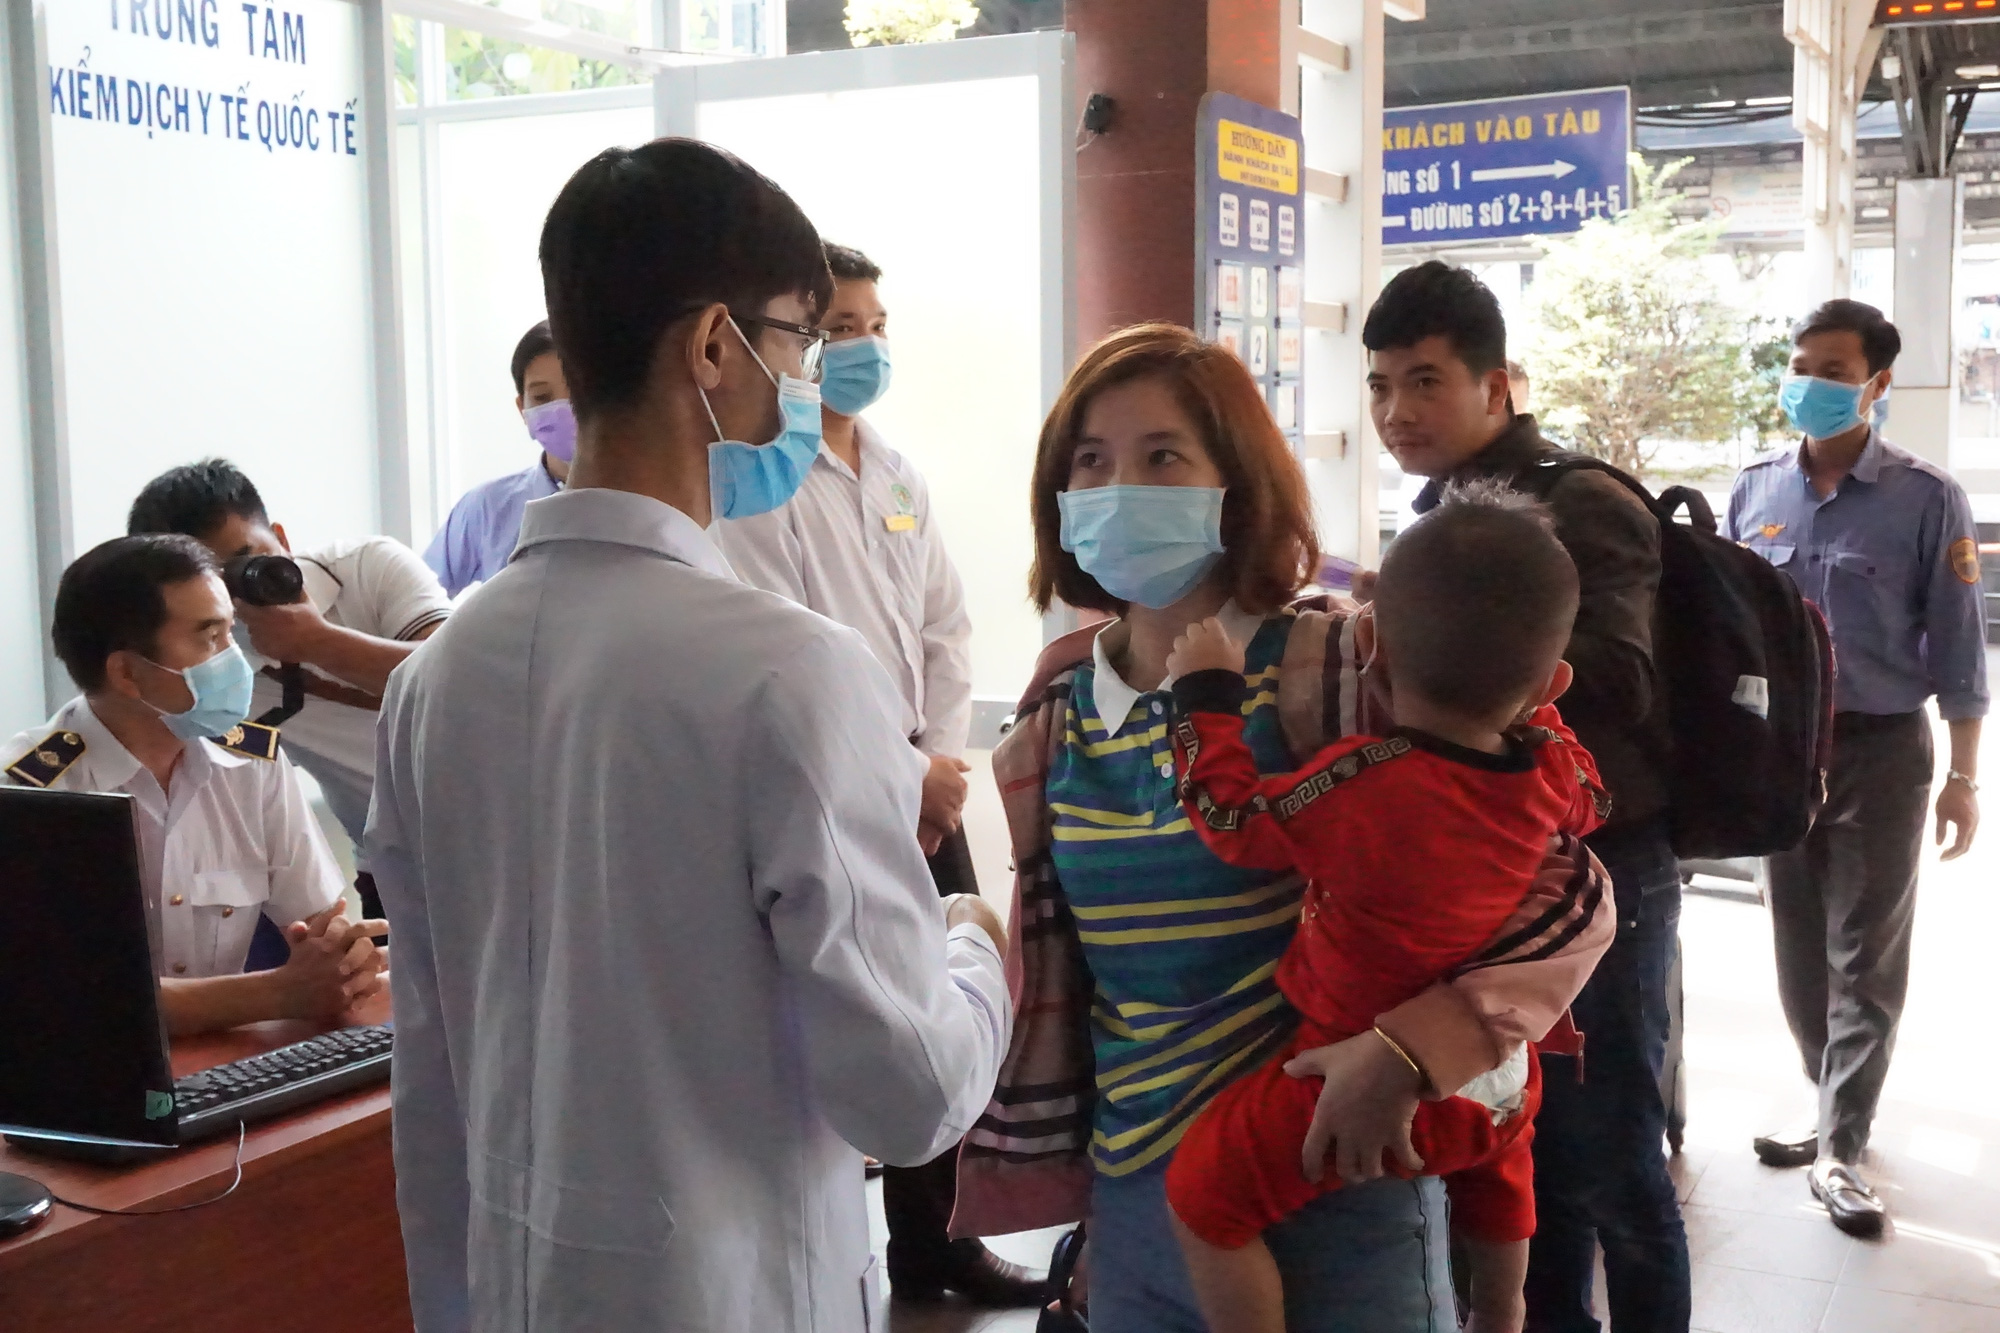 Saigon rail begins passenger temperature check as coronavirus death toll surpasses 630